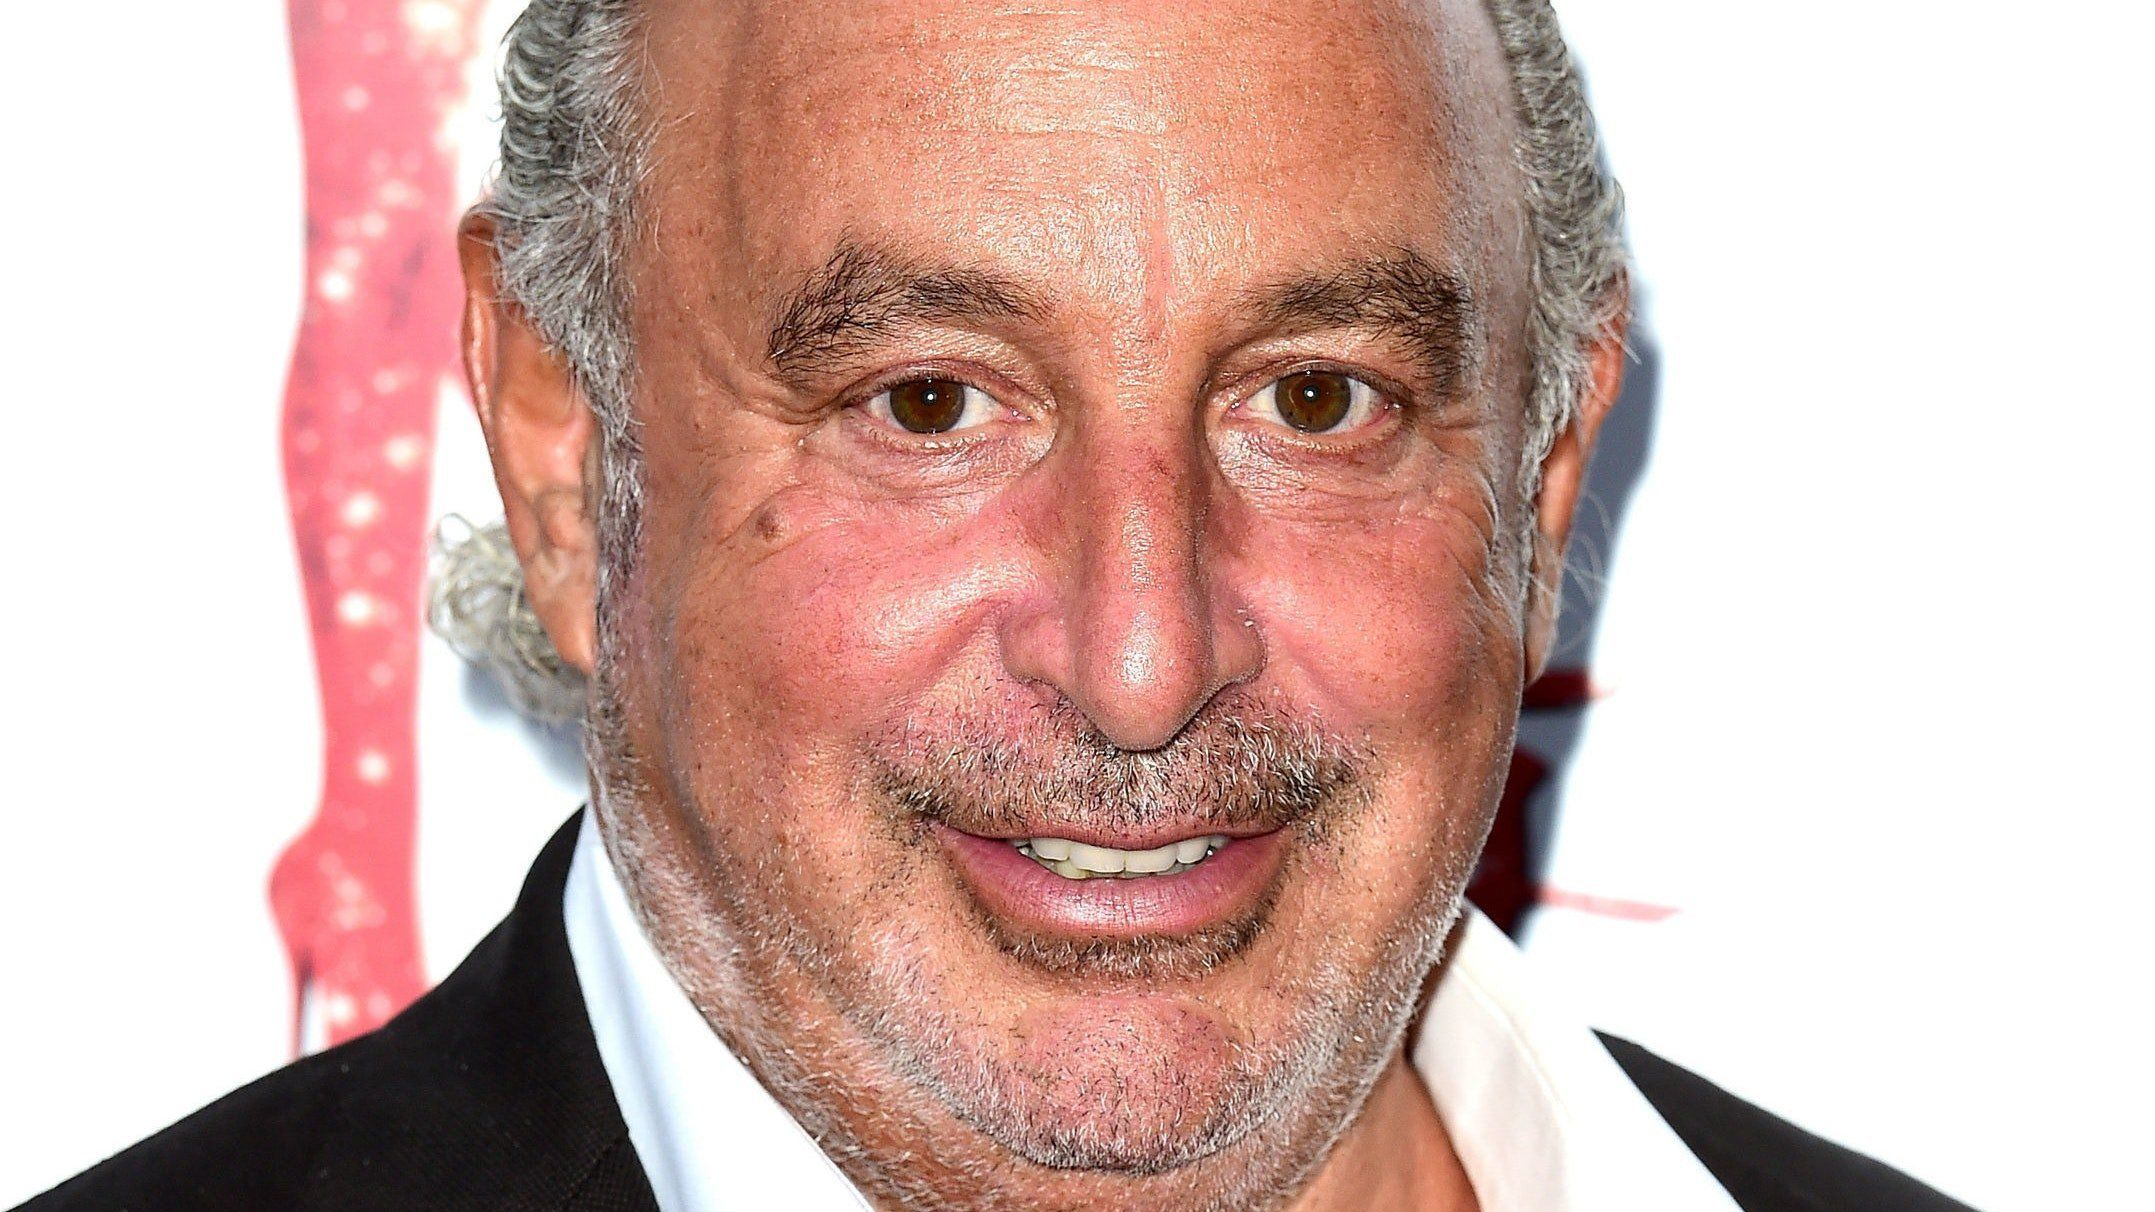 UK paper reveals abuse claims against tycoon Philip Green